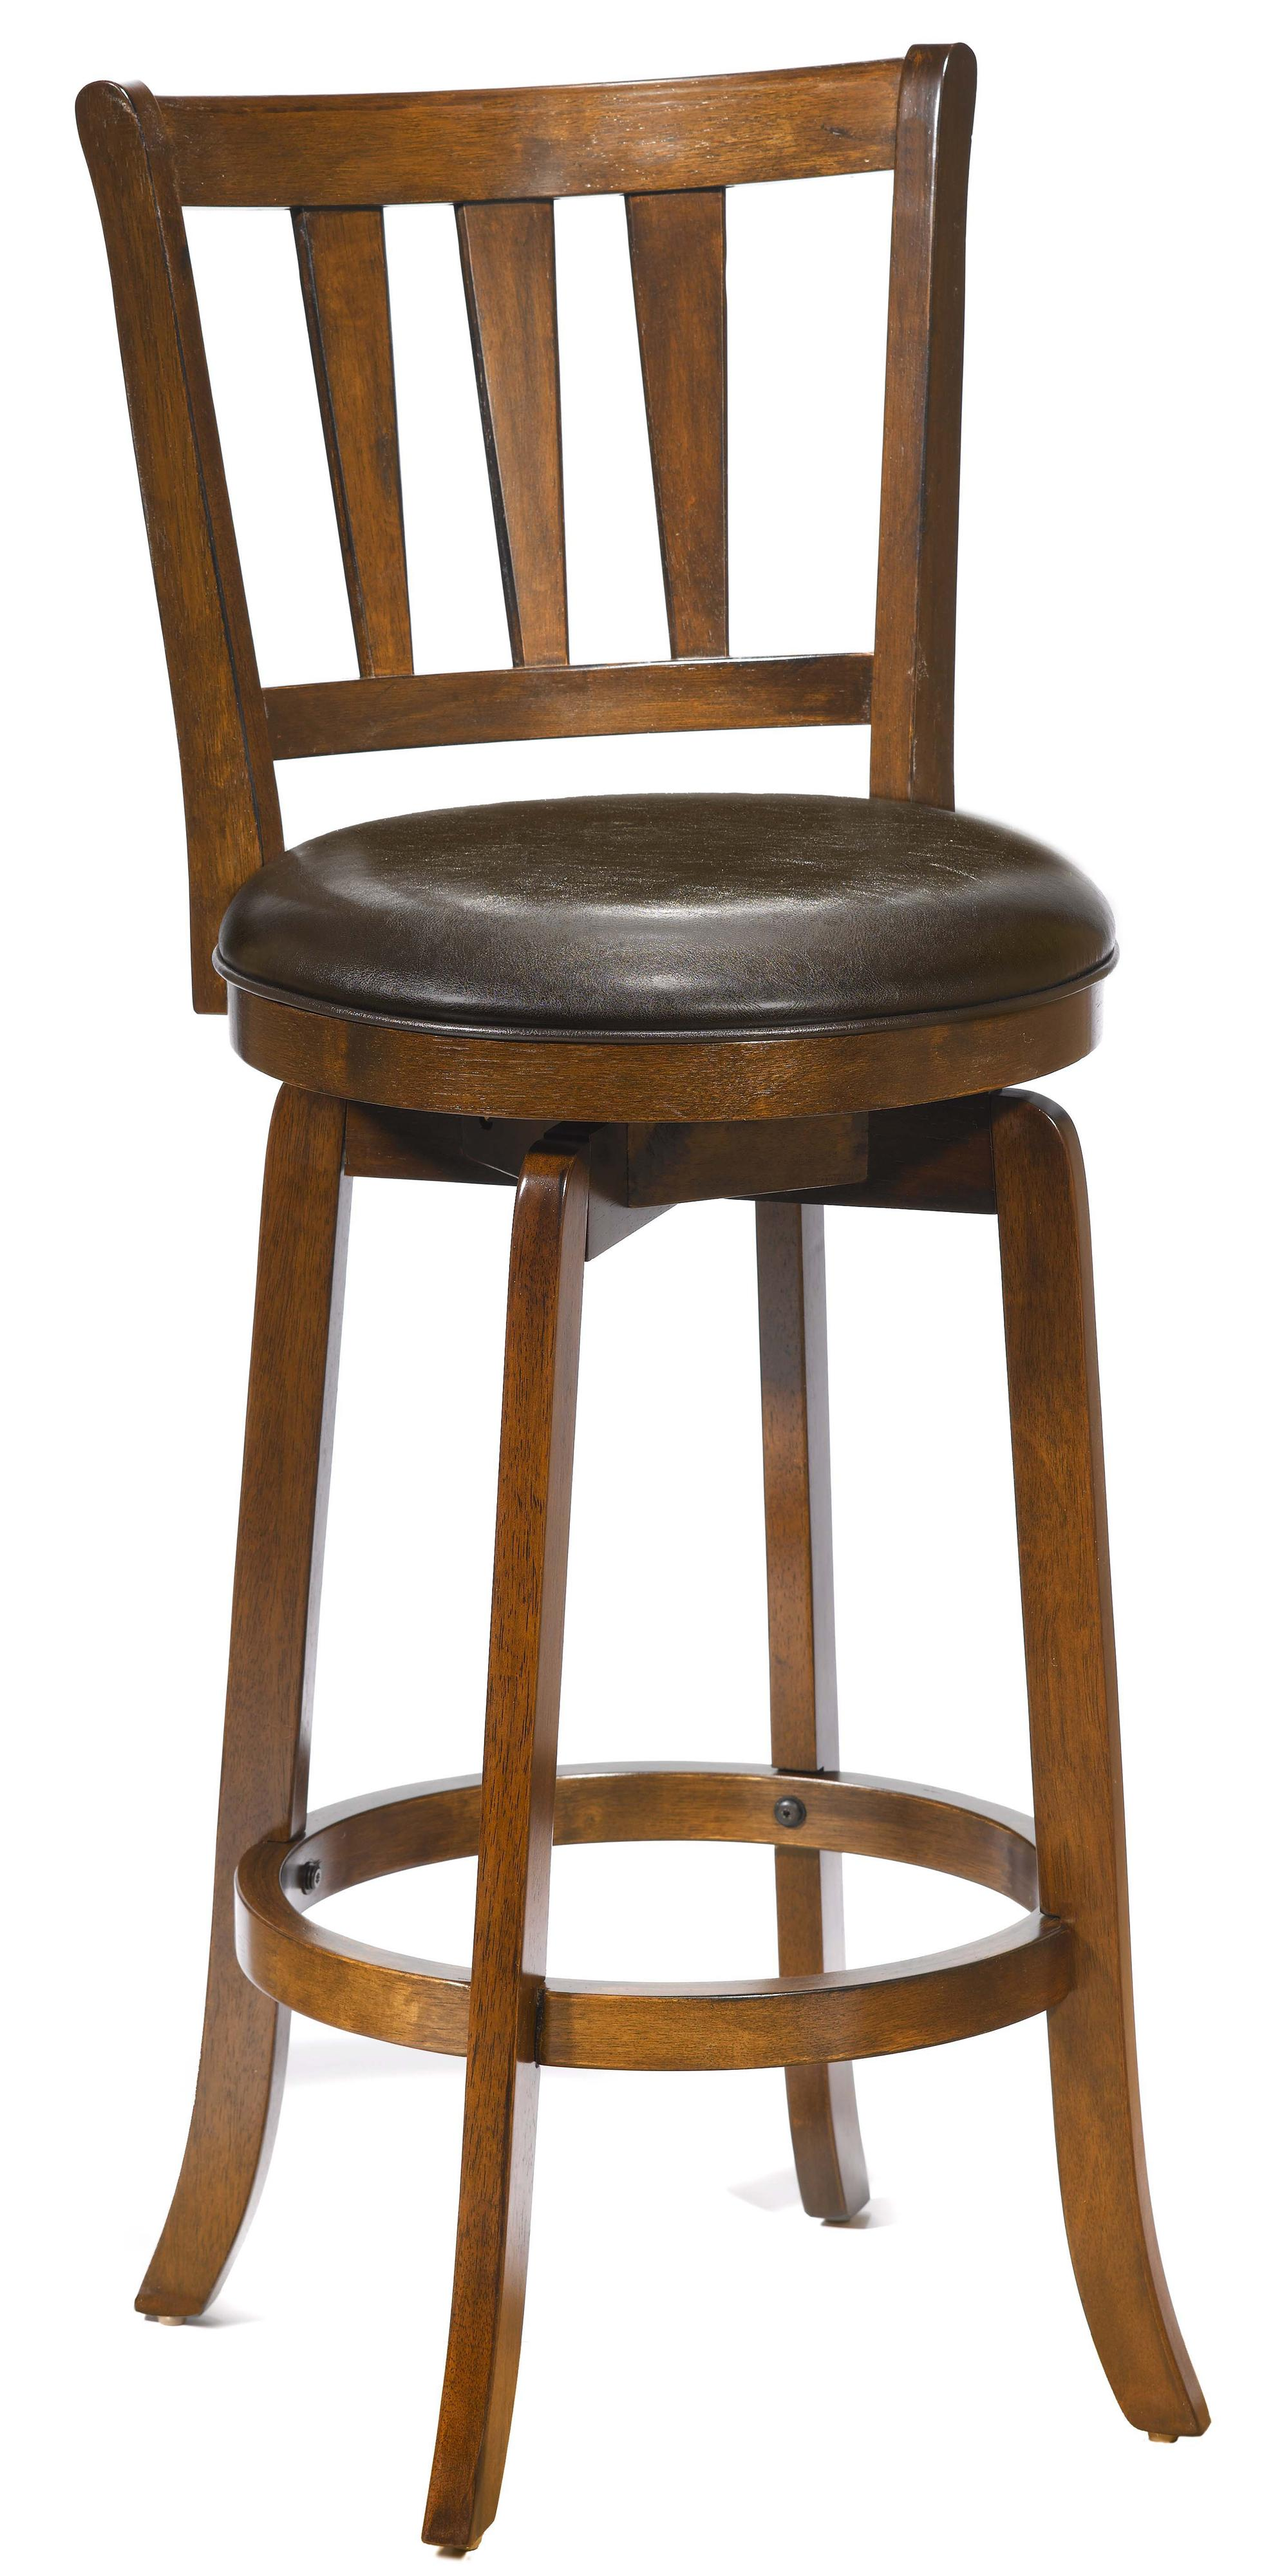 26 Quot Counter Height Presque Isle Swivel Bar Stool By